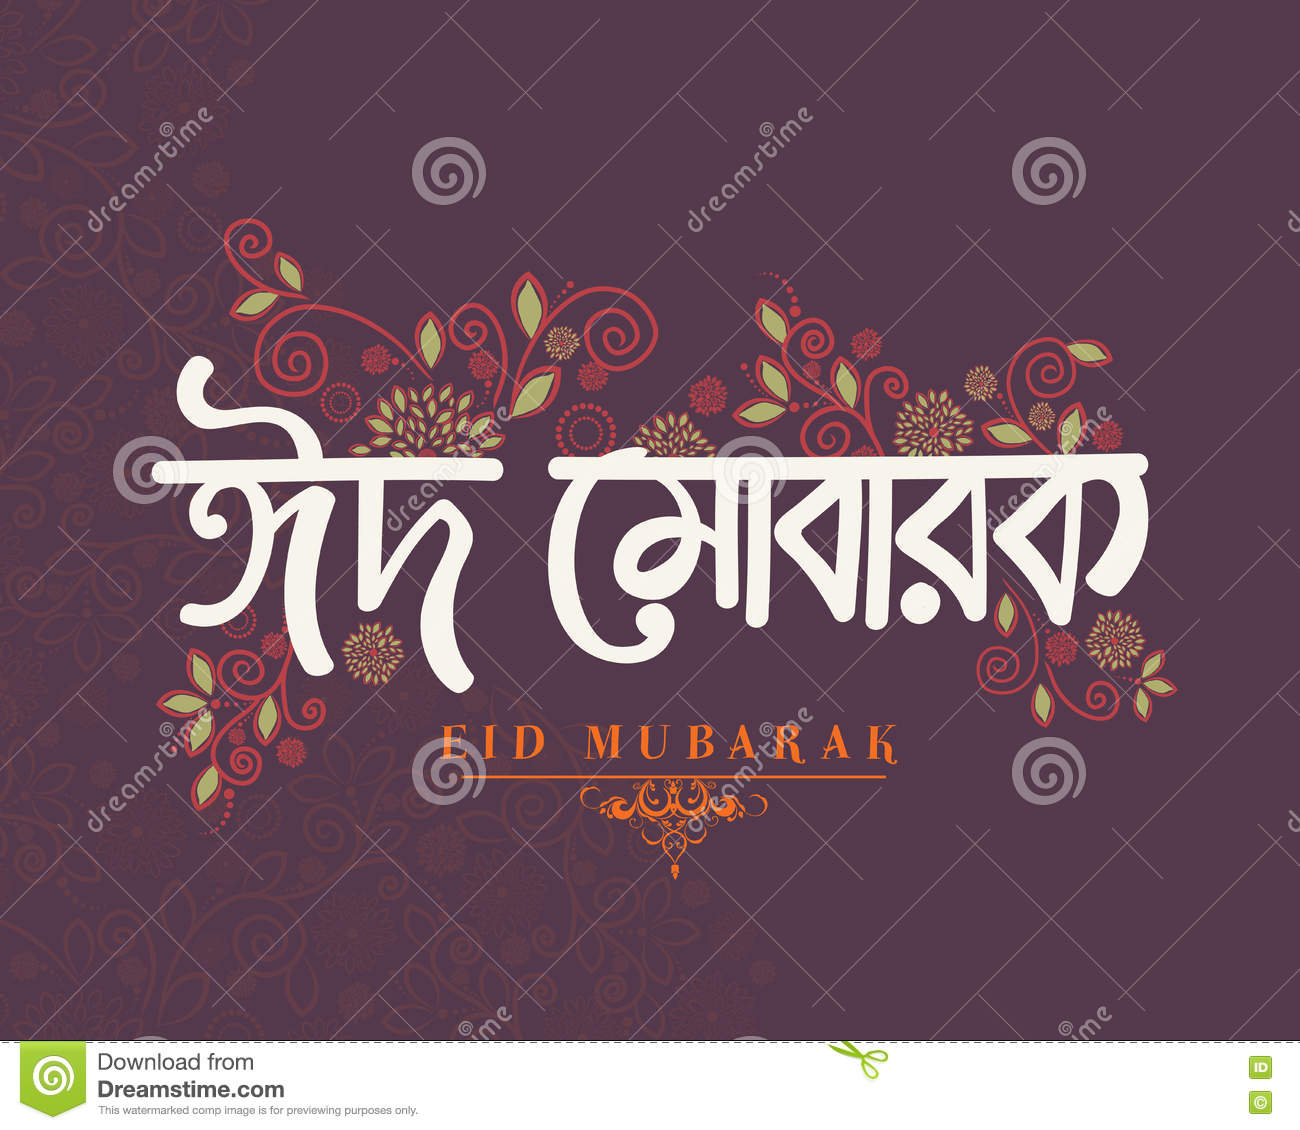 Greeting Card With Bengali Text For Eid Mubarak Stock Illustration